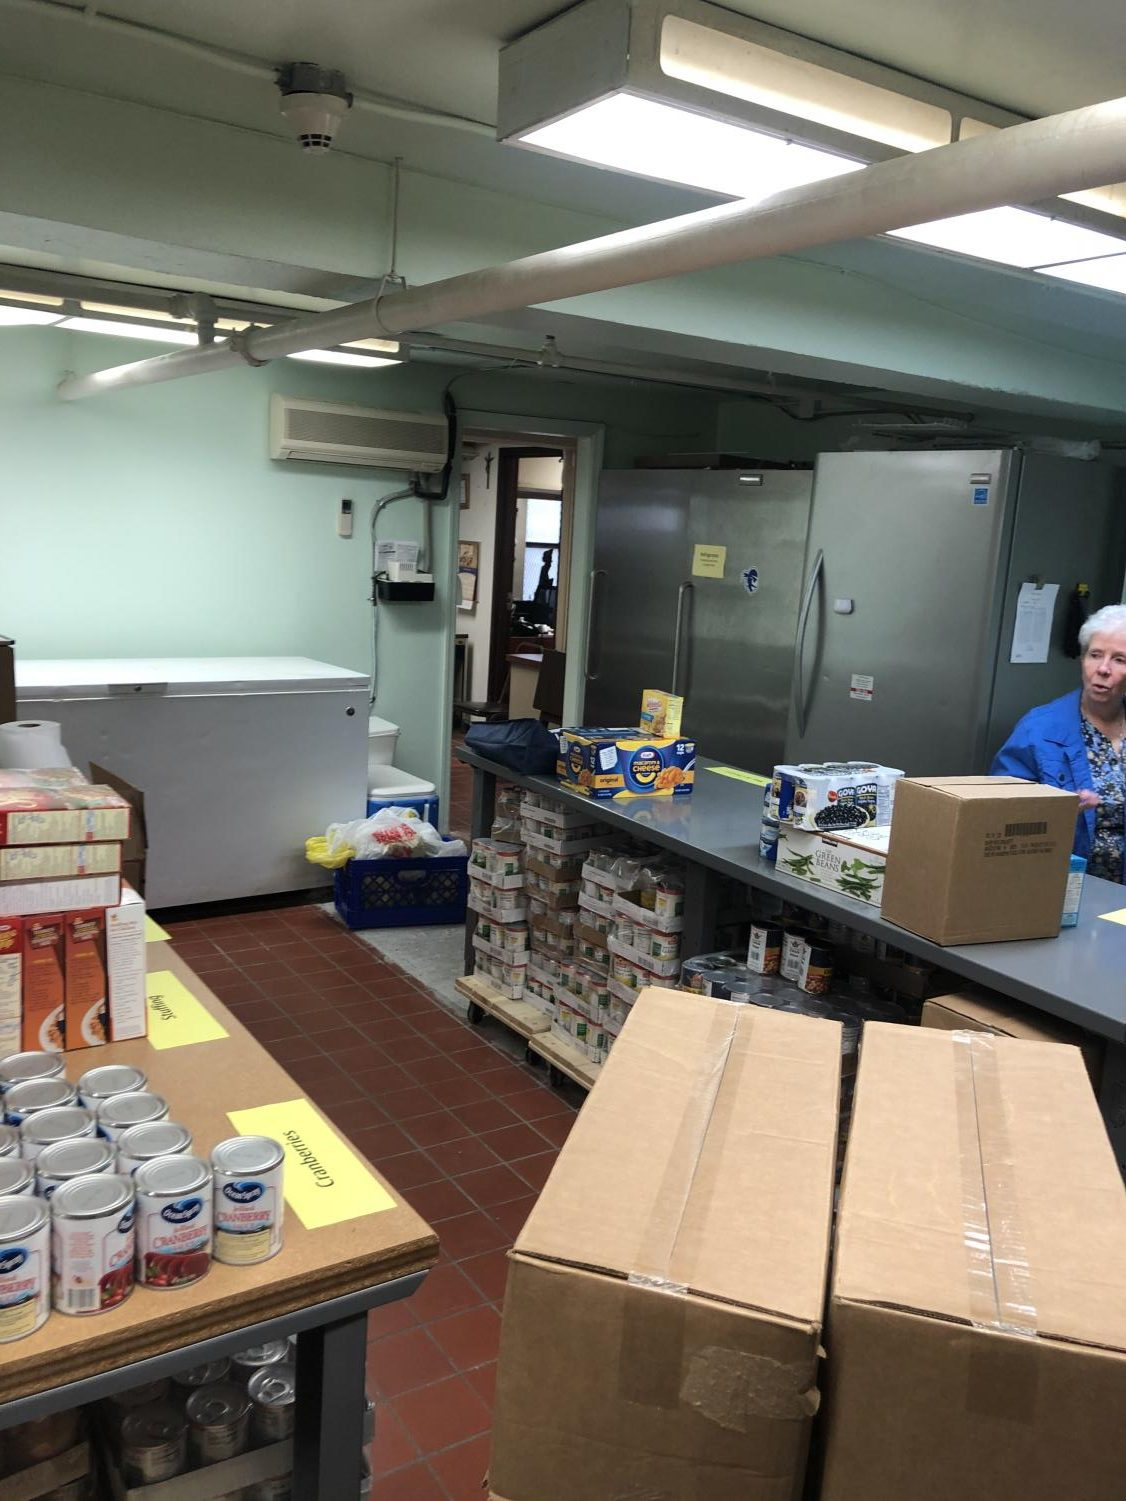 The renovated Pierre Touissant Food Pantry at St. Benedict's gives visitors a much better experience, according to Sister Linda Klaiss, O.S.J., who manages the pantry.